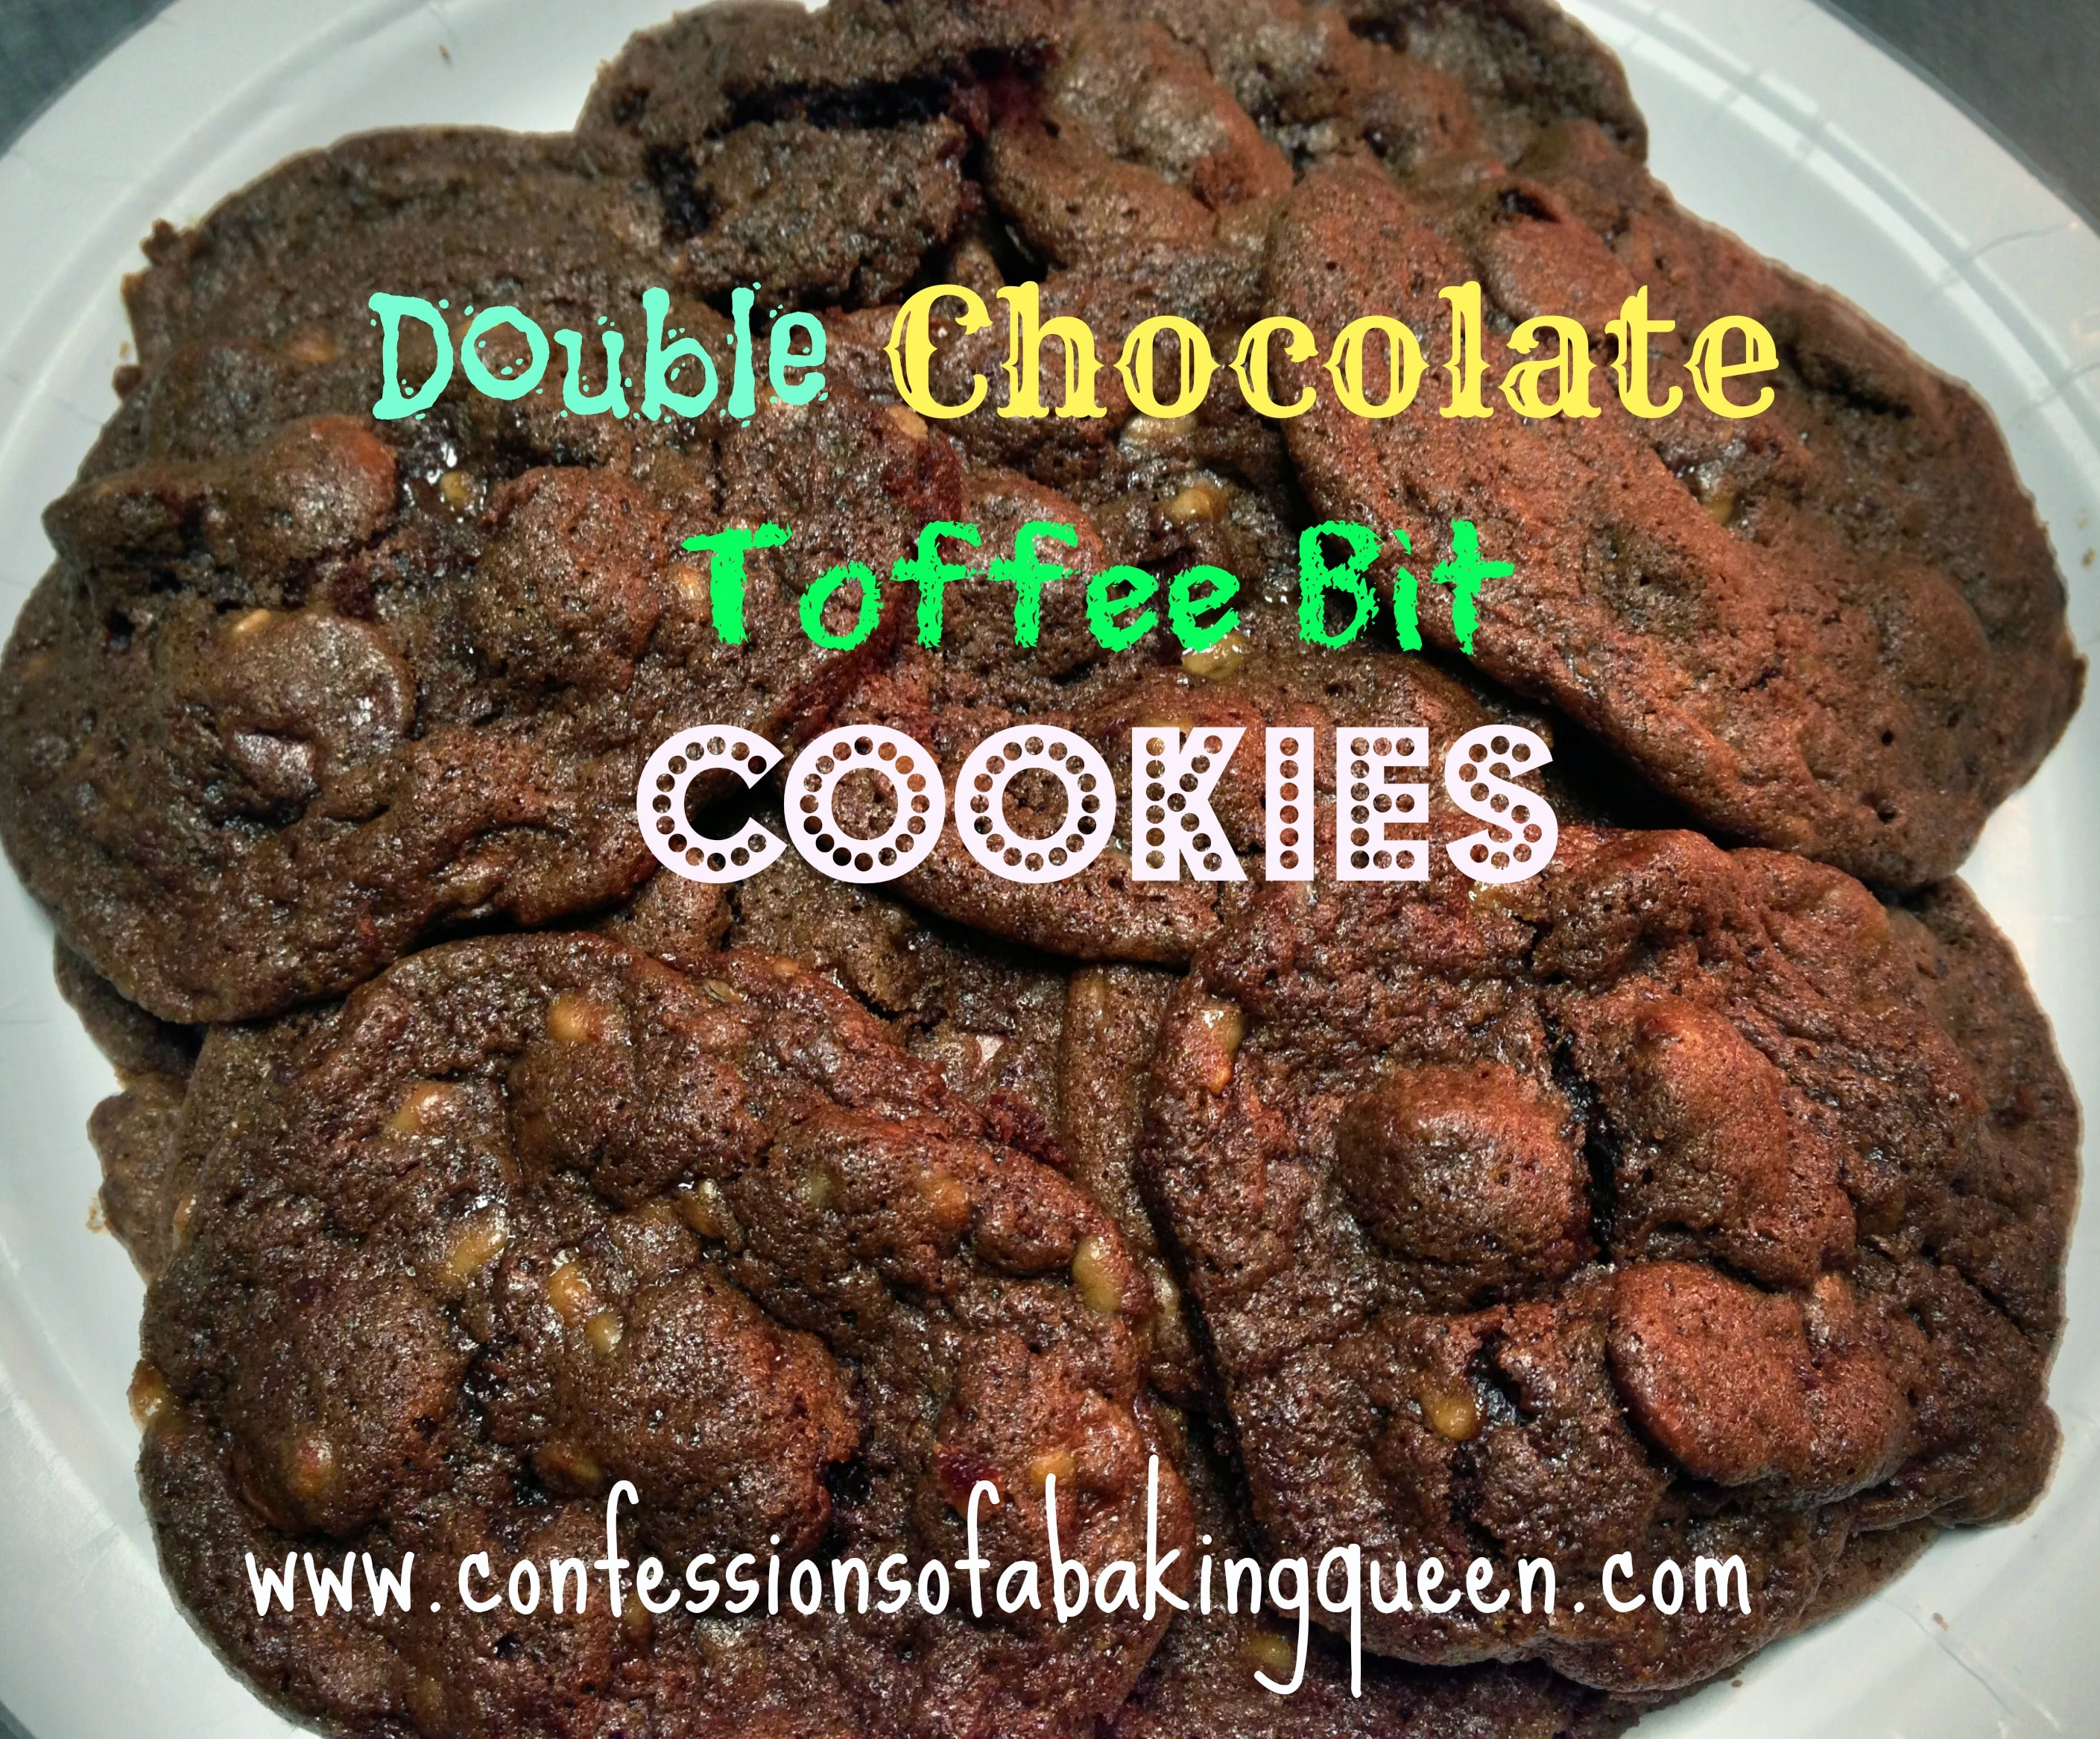 Double Chocolate Toffee Bit Cookies www.confessionsofabakingqueen.com